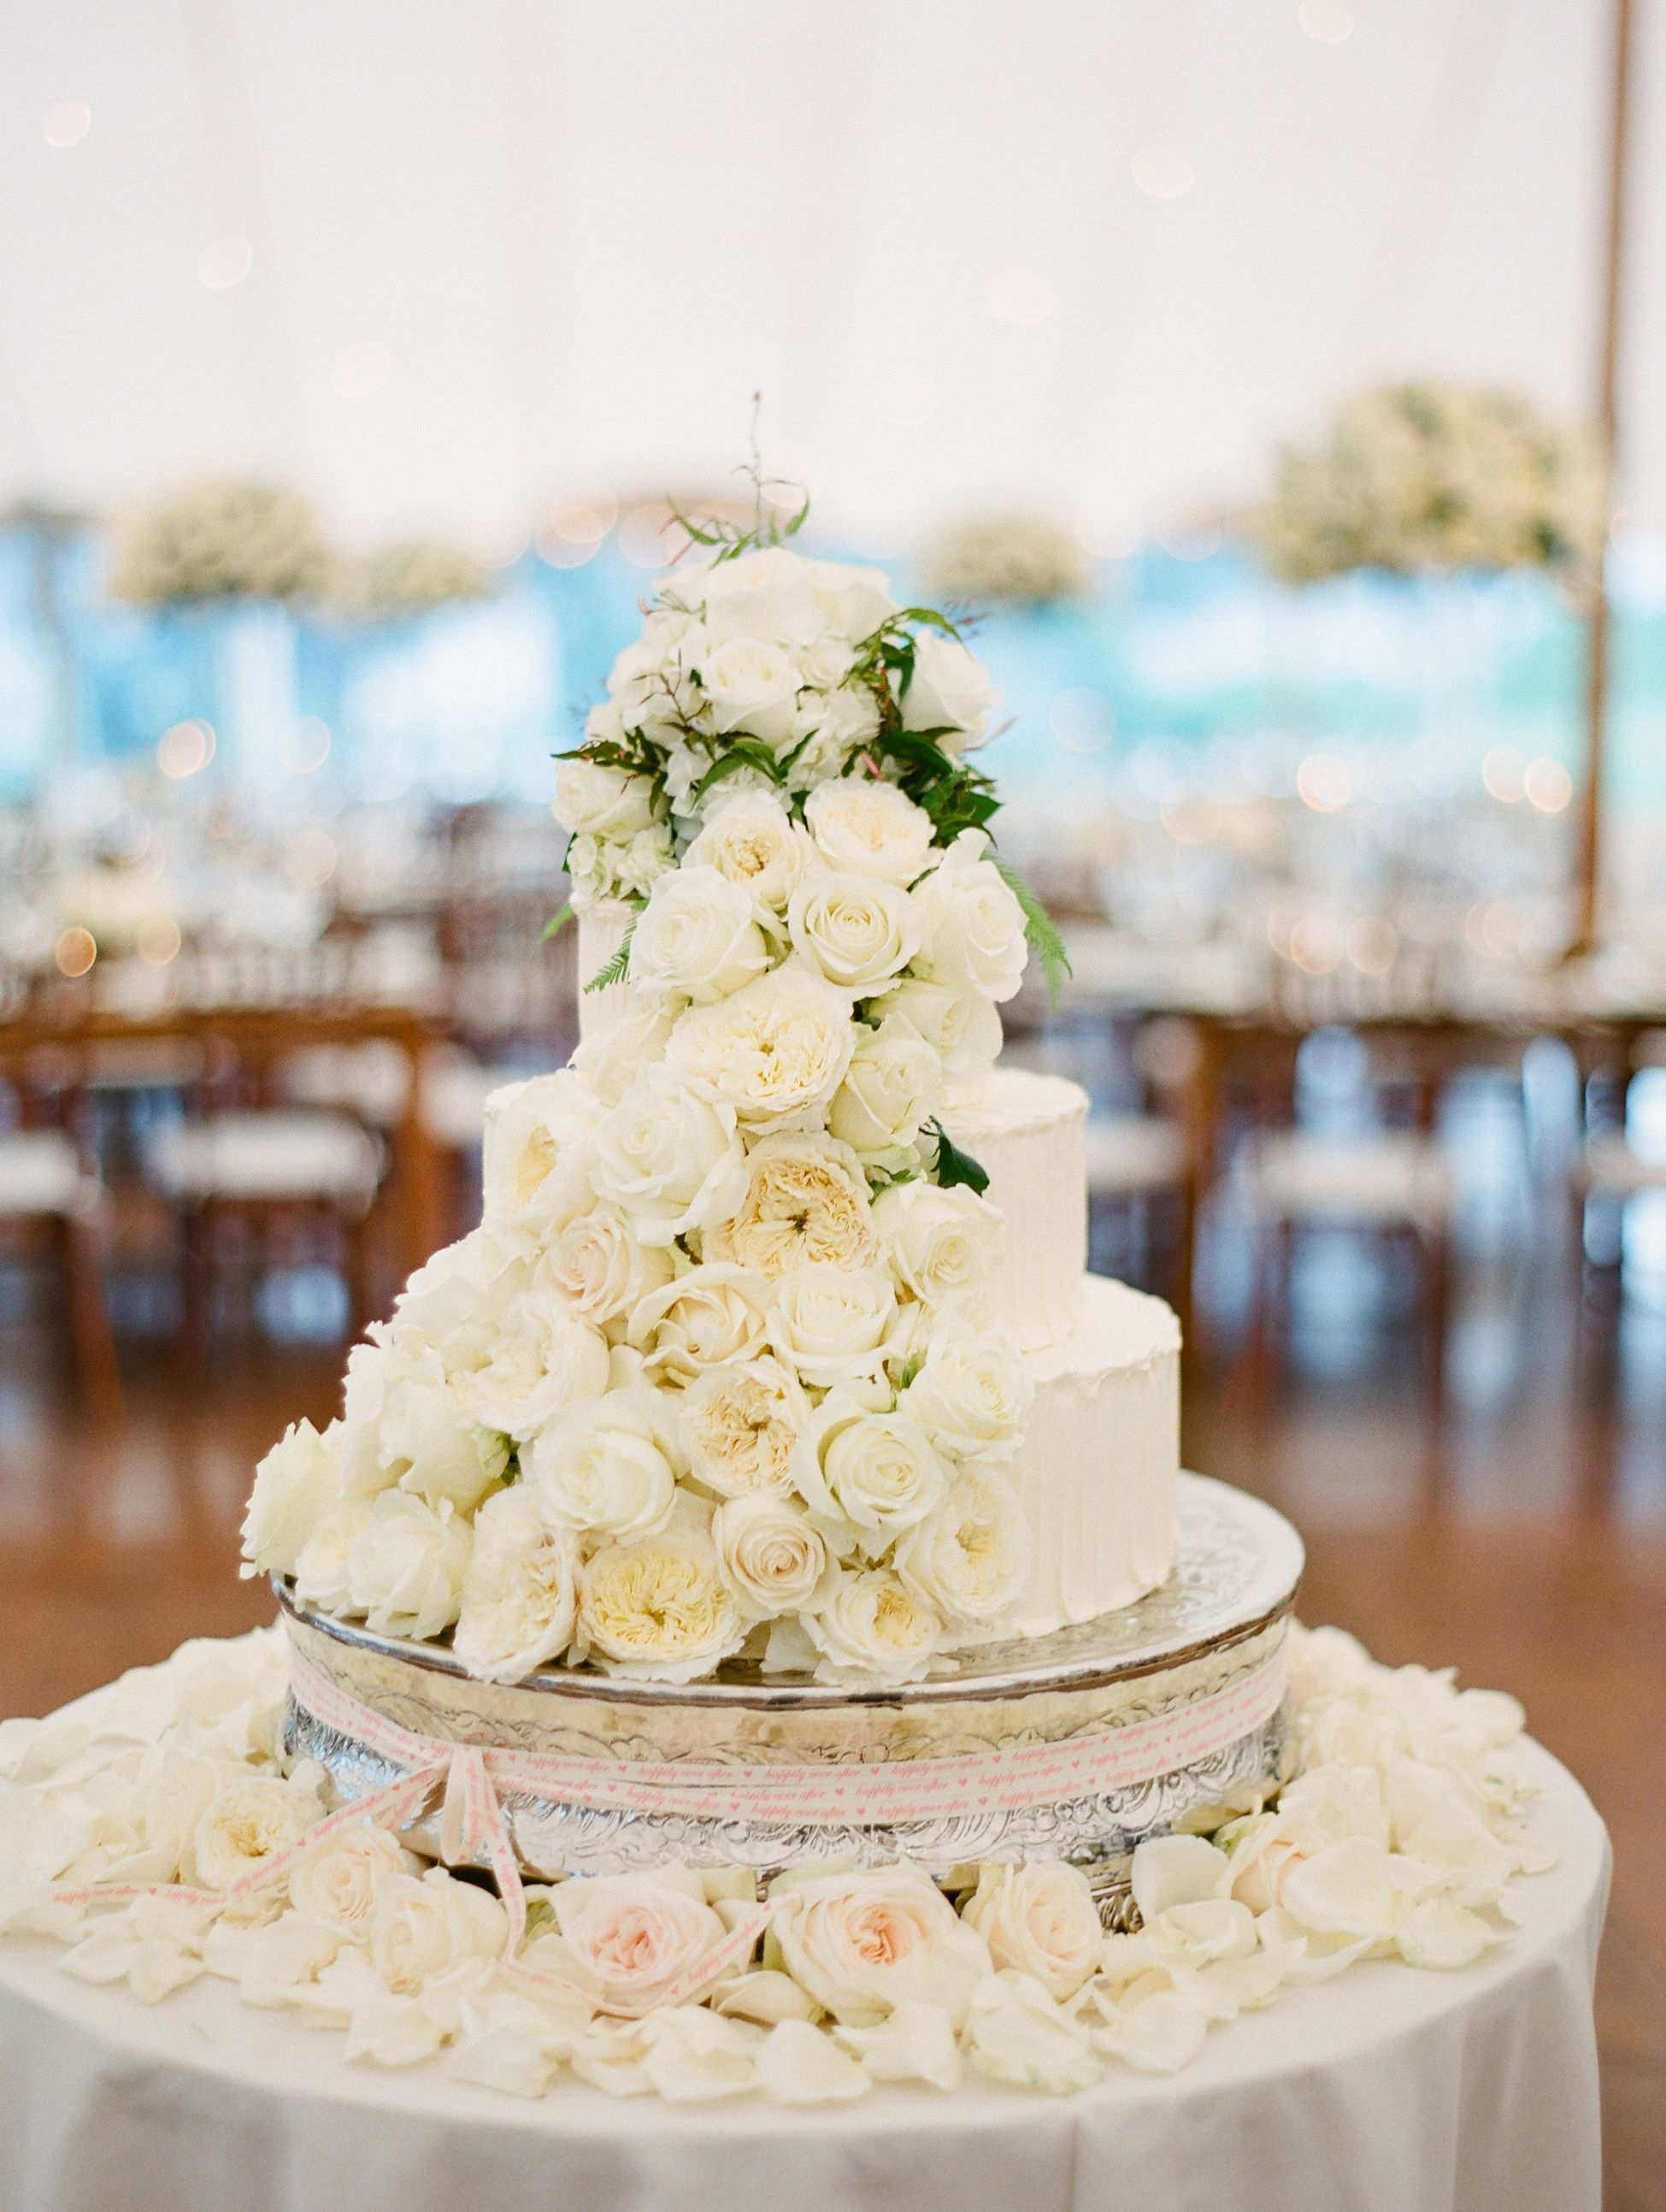 All White Fresh Flower Wedding Cake Wedding Cake Fresh Flowers